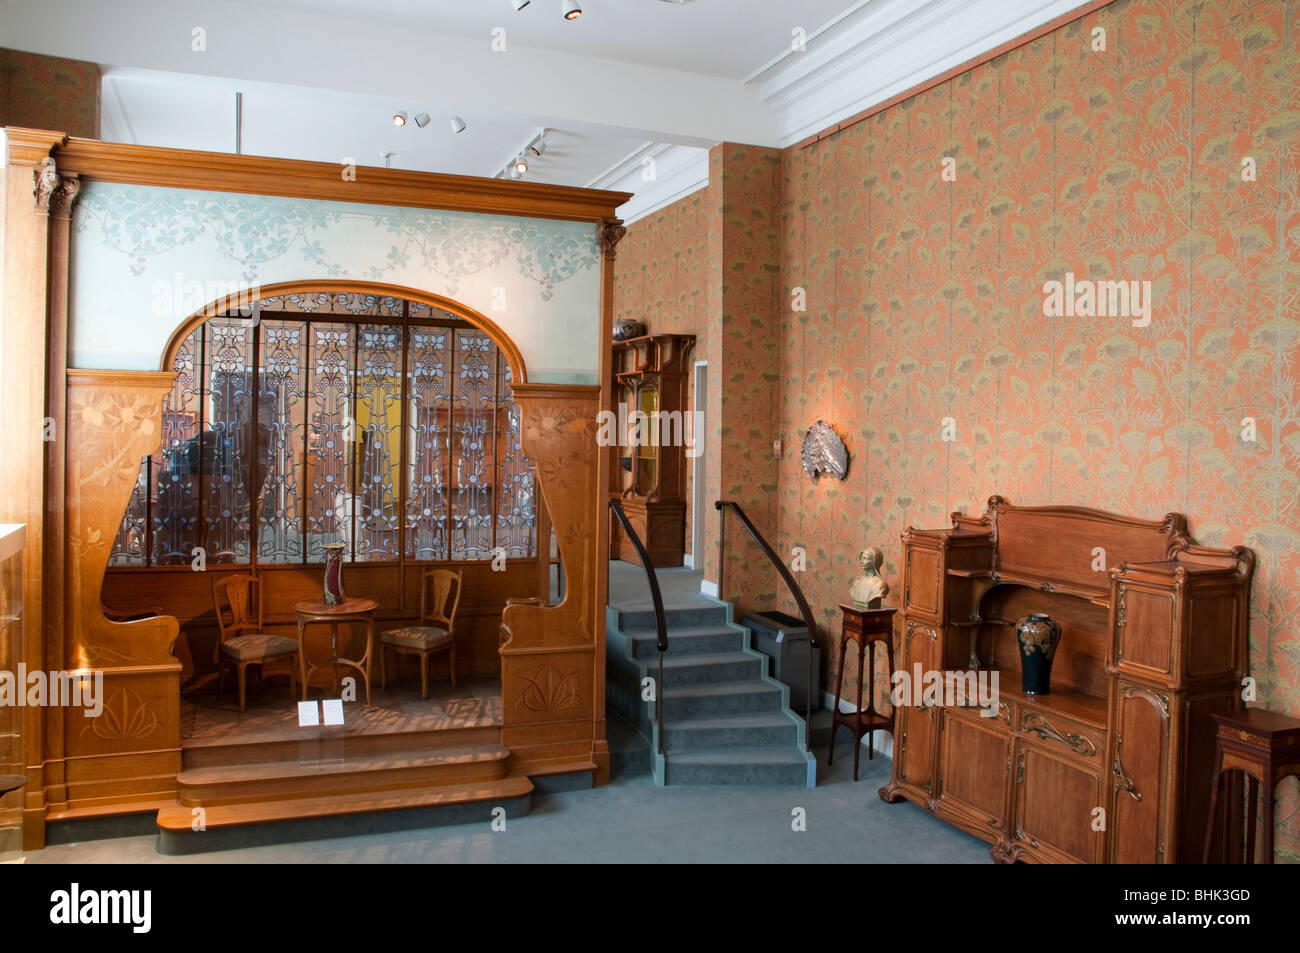 Museum Für Kunst Und Gewerbe Museum Kunst Und Gewerbe Art High Resolution Stock Photography And Images - Alamy